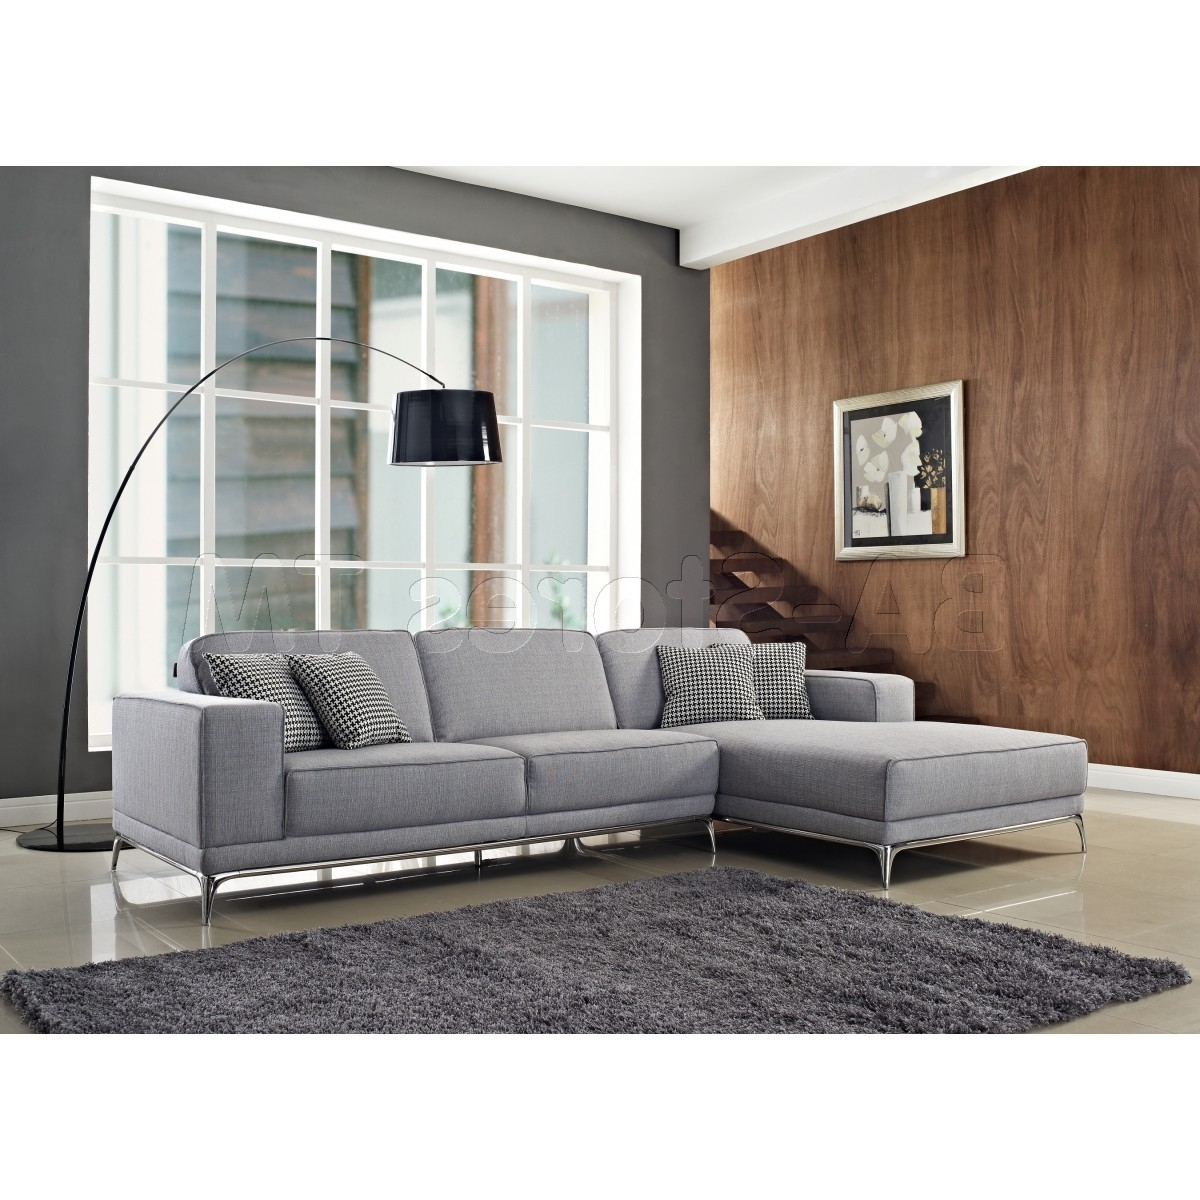 Most Recent Light Grey Sectional Sofas In Agata Sectional Sofa (View 12 of 15)